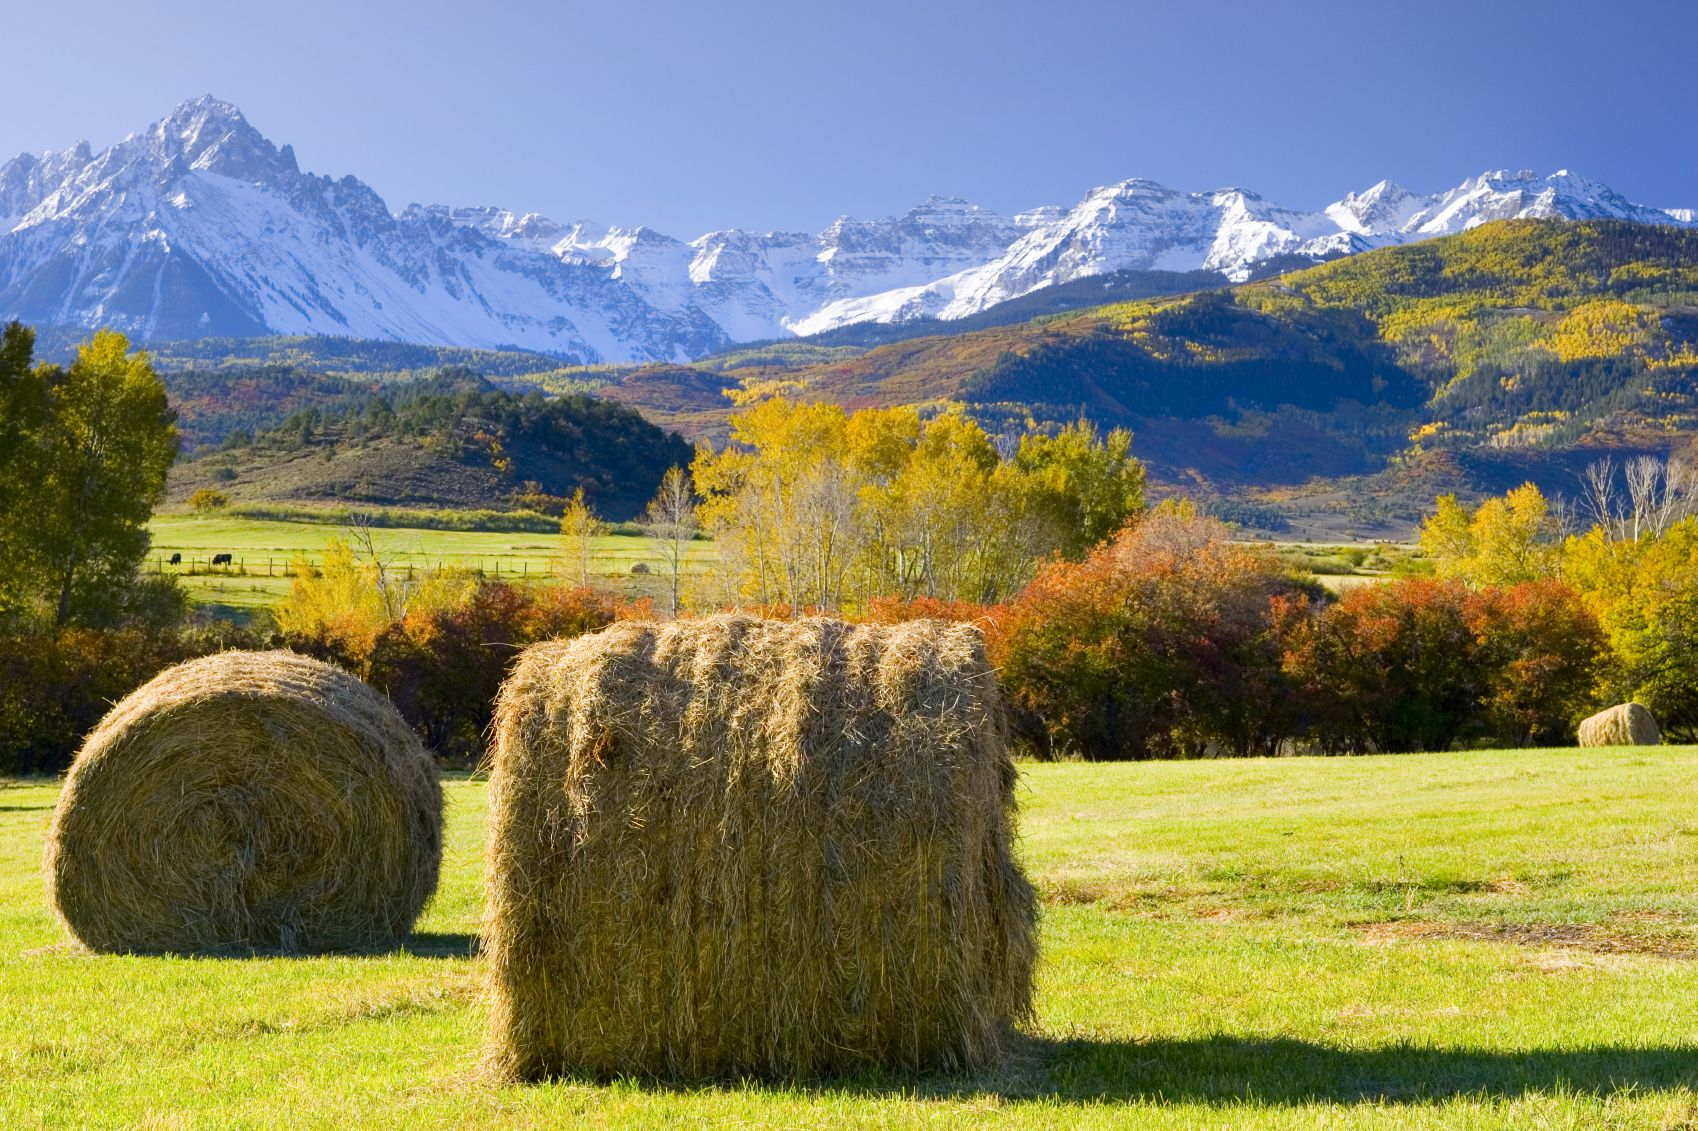 Sneffels Mountain Range Colorado. I'd love to go ride a ranch horse and camp in the wilderness :)